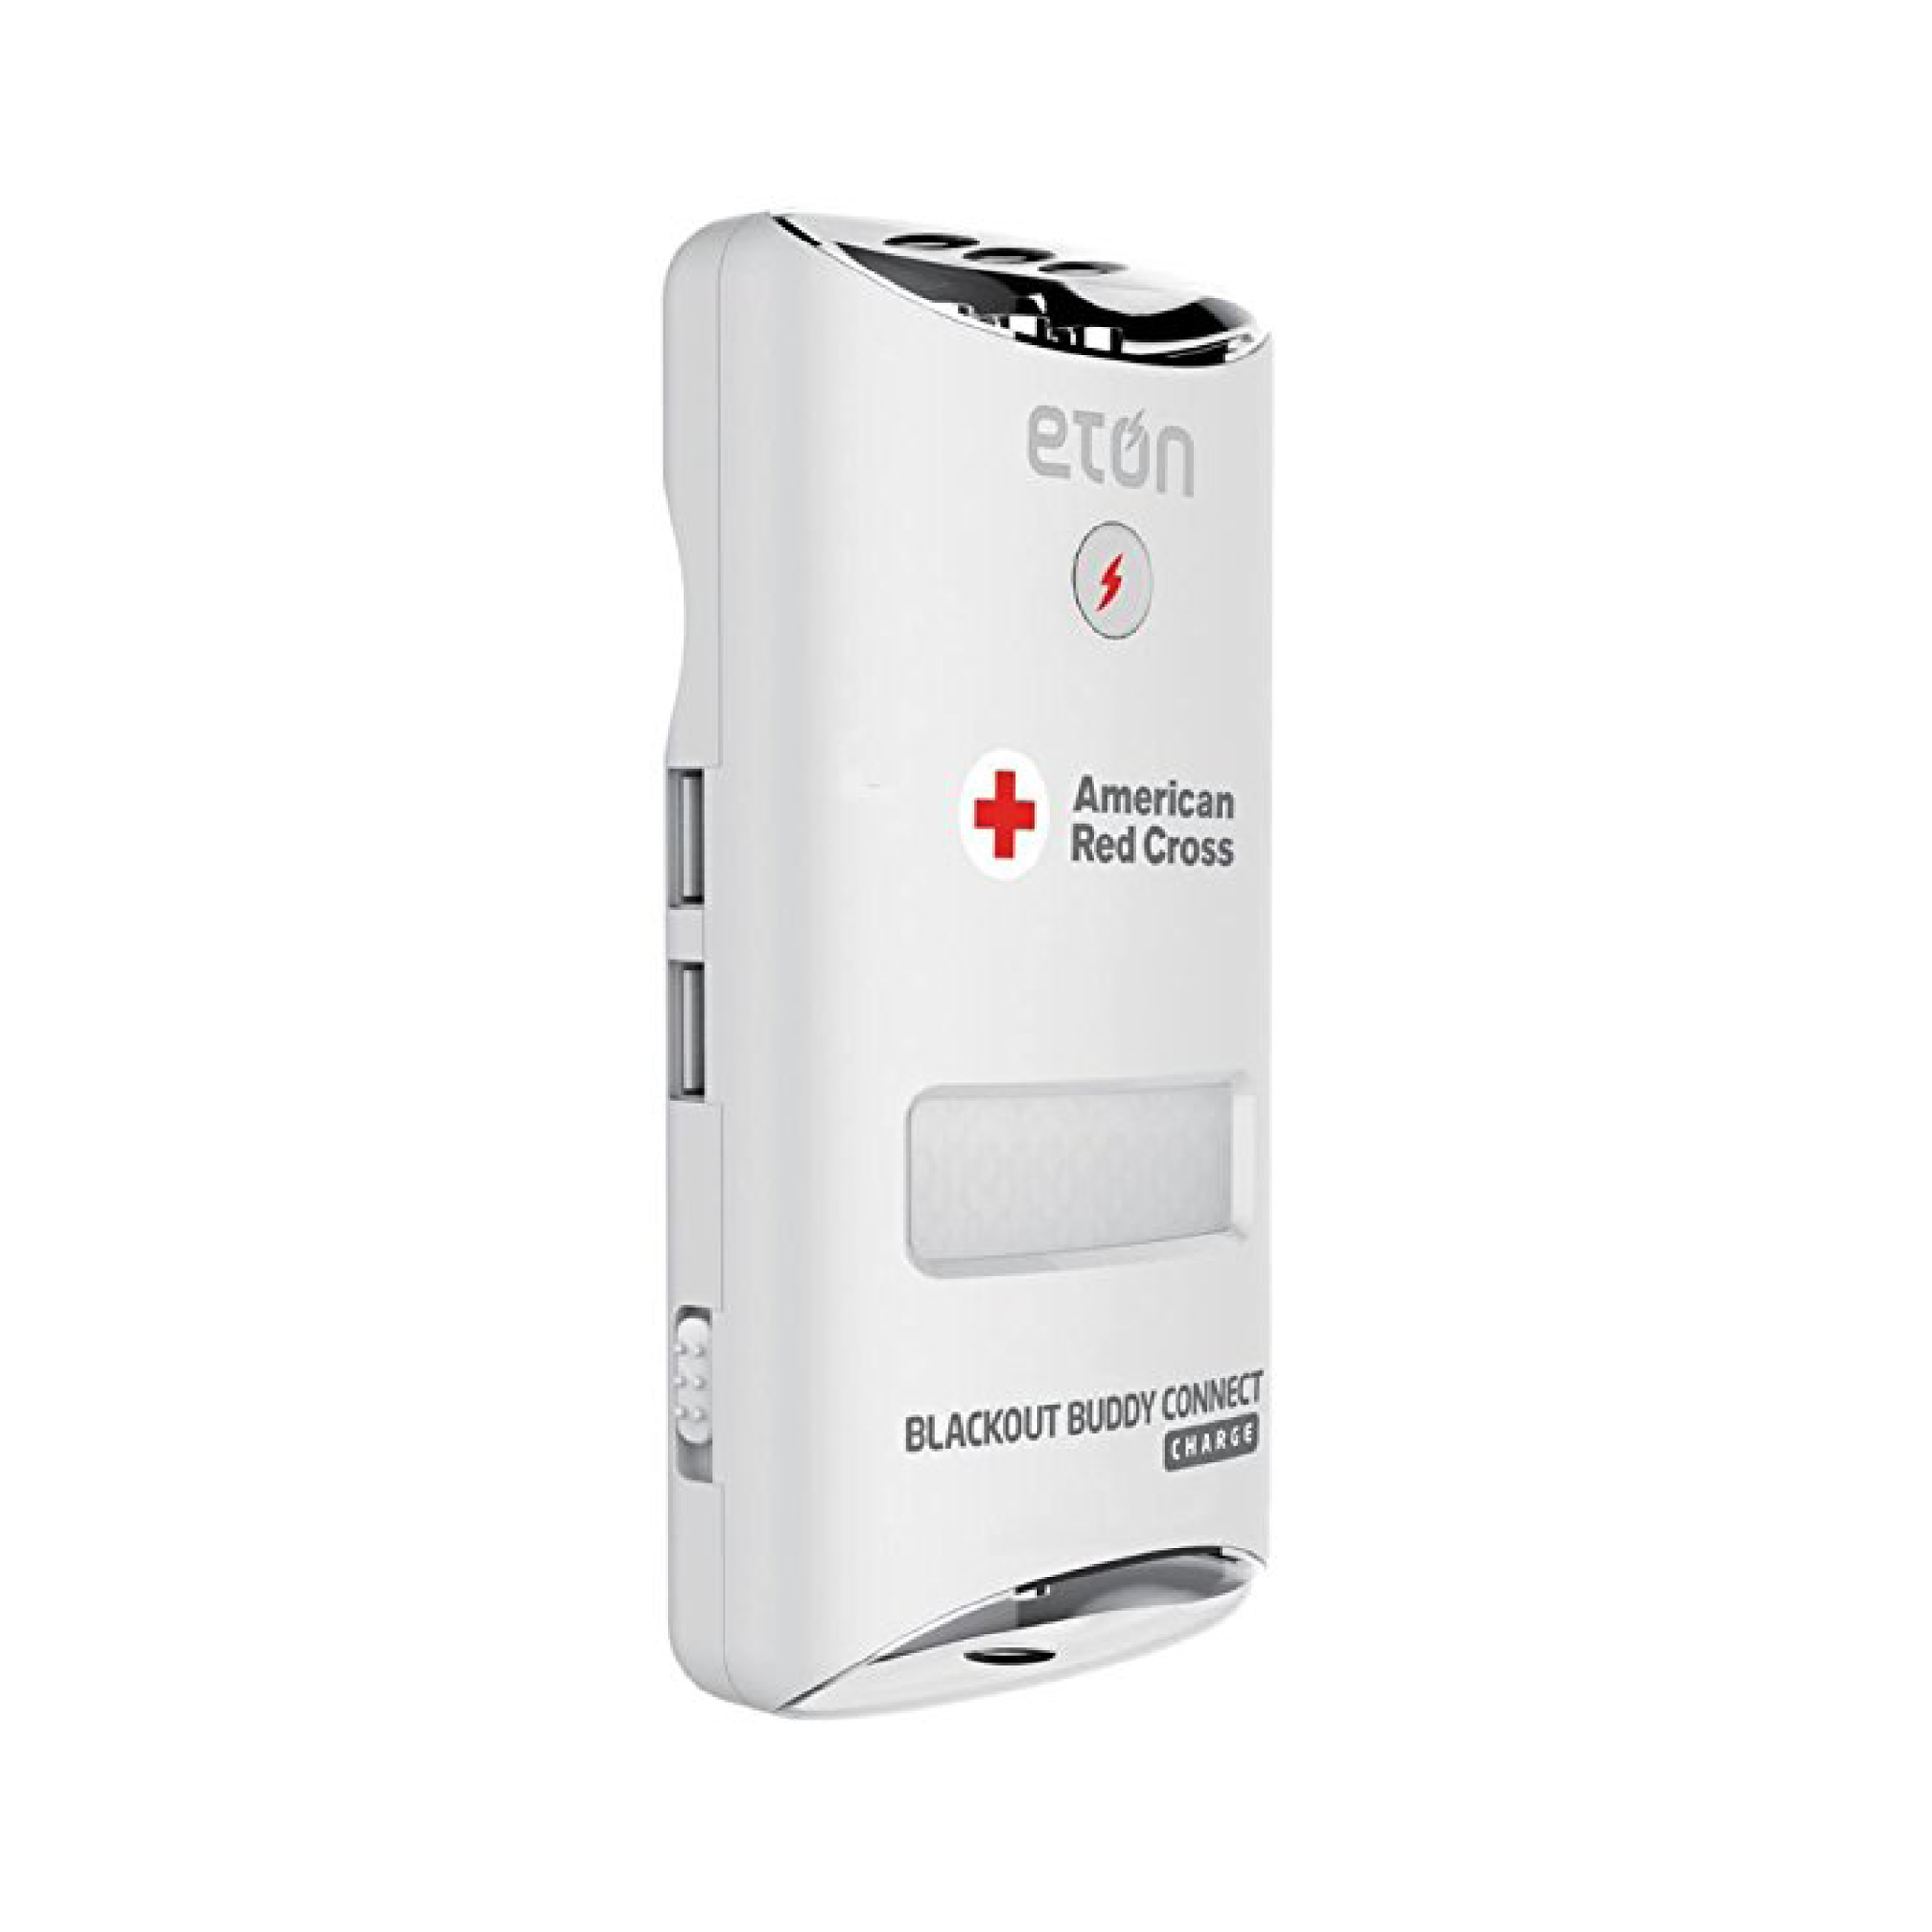 American Red Cross Blackout Buddy Connect Charge - Etón - Etón E-Commerce